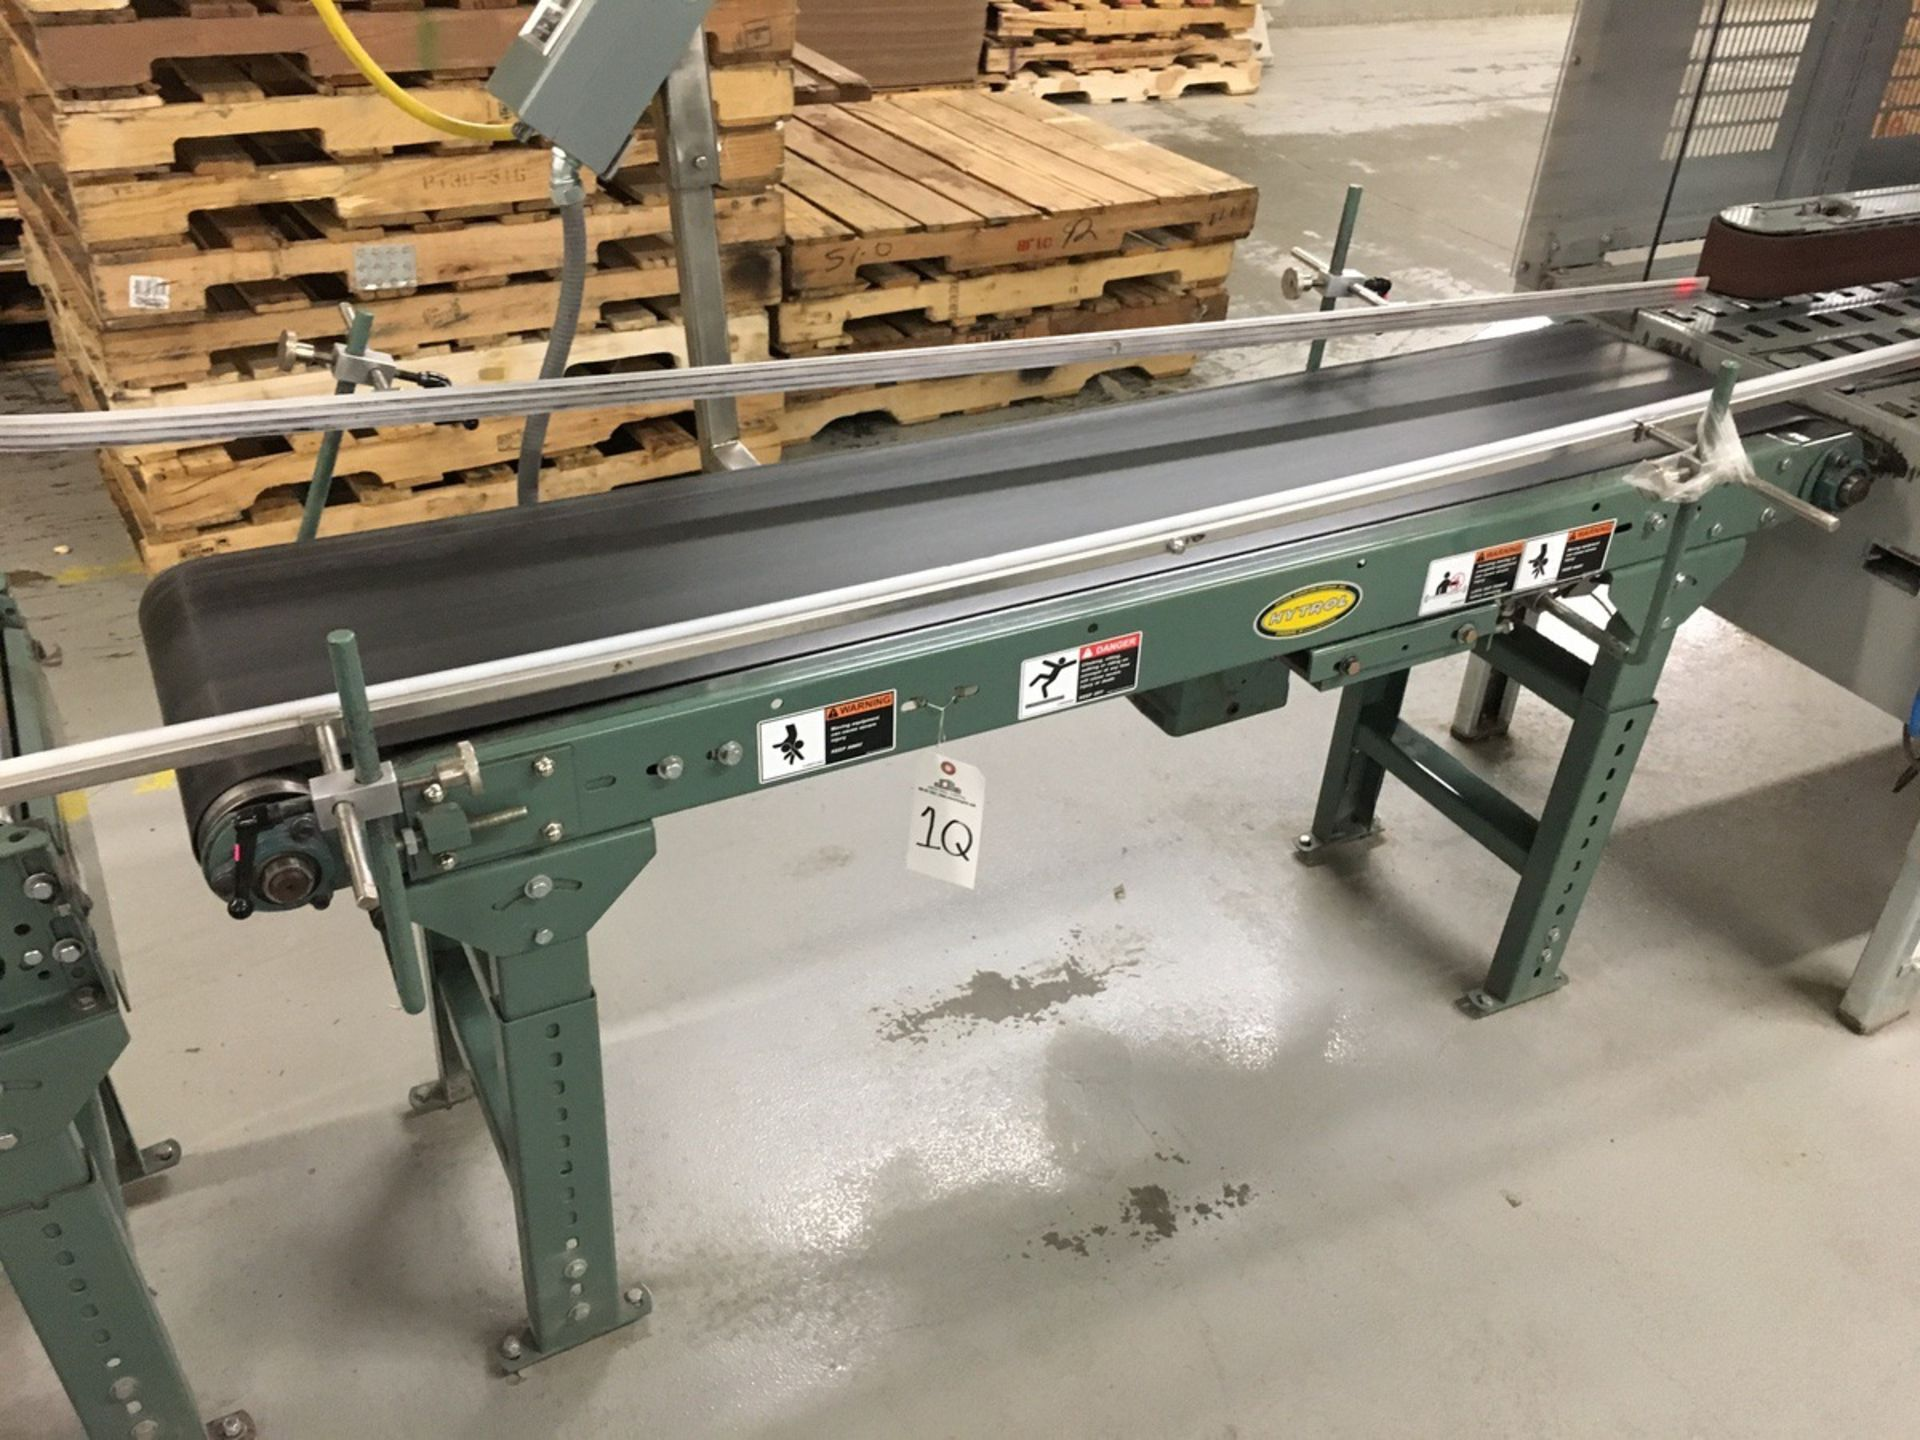 Lot 1Q - 2013 (2) Hytrol Powered Belt Conveyors, 14in W Belt, 10ft Length and 6 | Insp by Appt | Rig Fee: 125